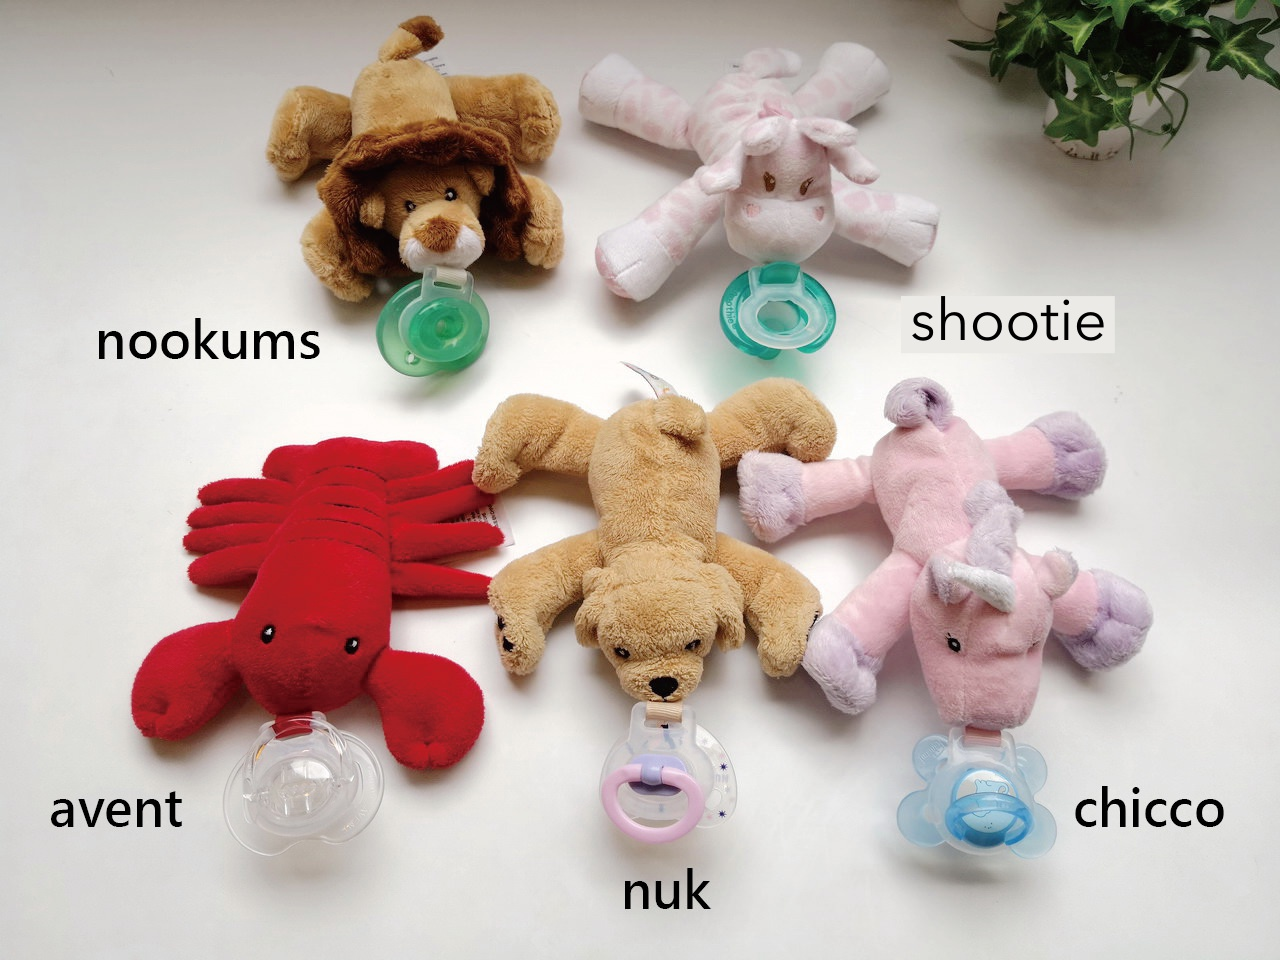 Nookums pacifier holder is compatible with most pacifier brands in market.